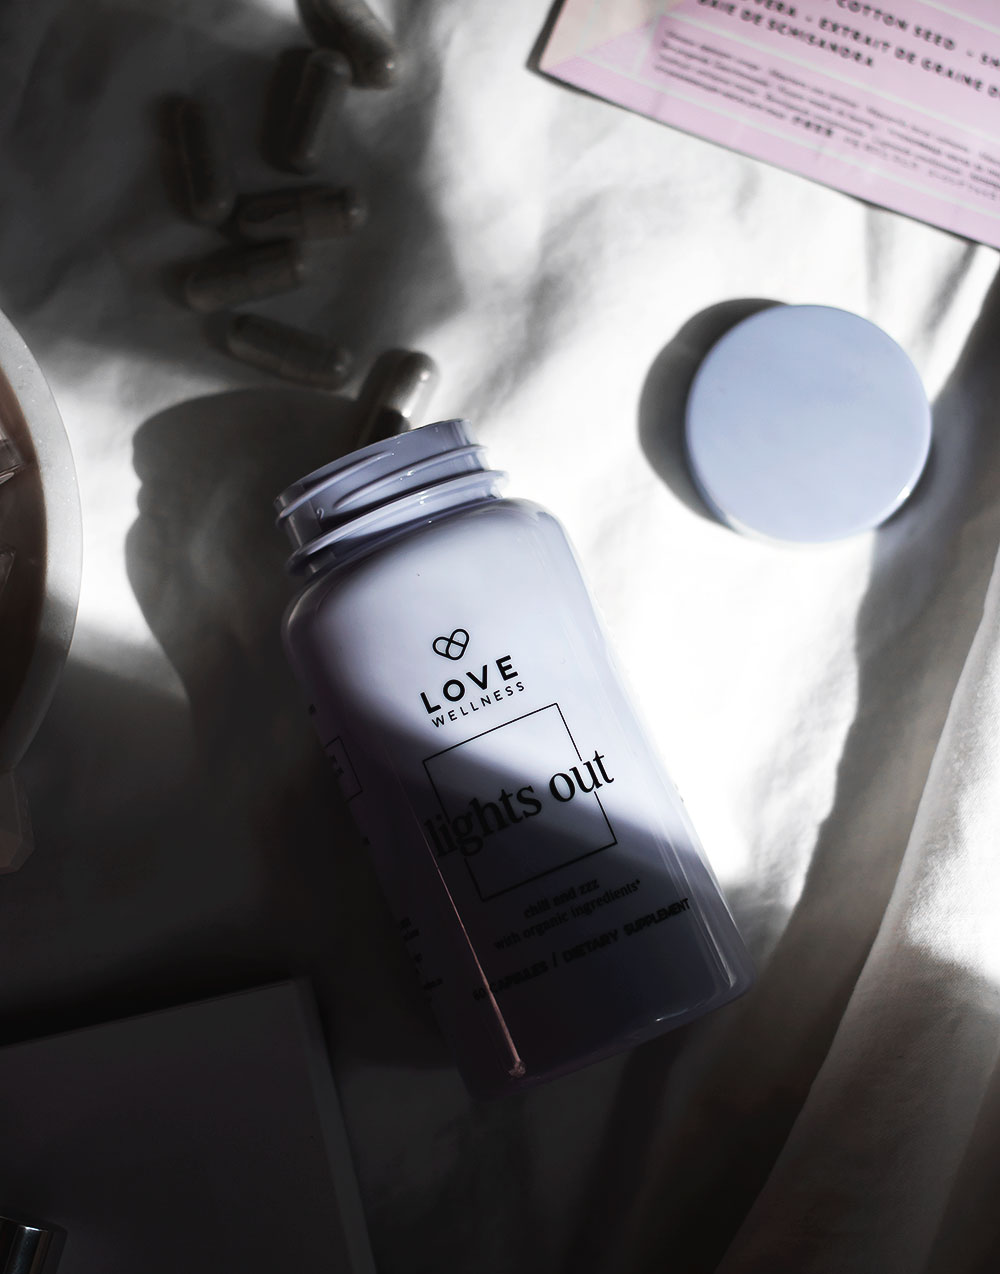 Beauty Sleep Products Love Wellness Lights Out